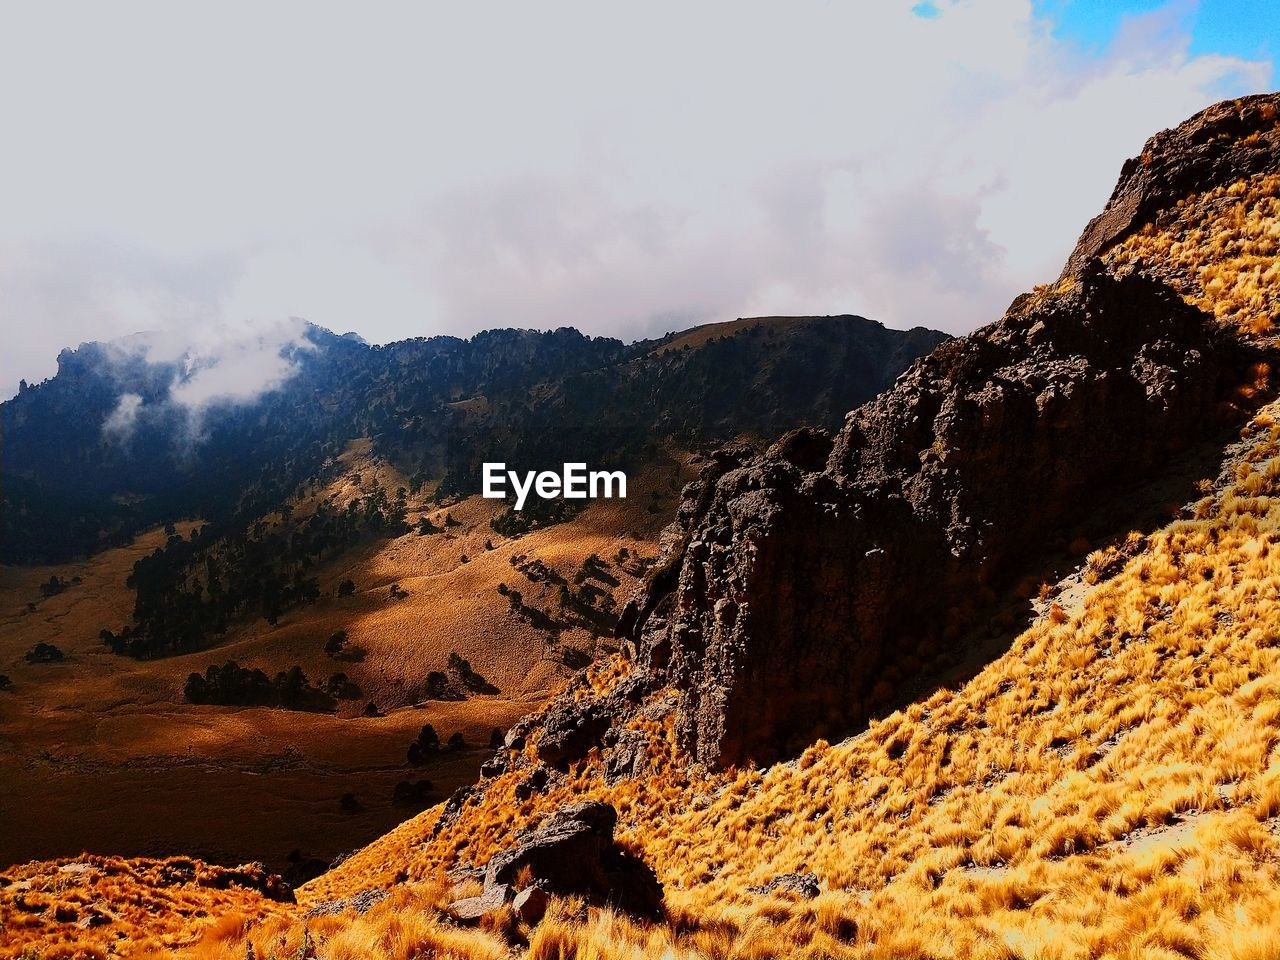 mountain, beauty in nature, sky, scenics - nature, tranquil scene, tranquility, cloud - sky, rock, nature, no people, non-urban scene, environment, mountain range, day, landscape, rock formation, solid, rock - object, land, physical geography, outdoors, formation, climate, arid climate, eroded, mountain peak